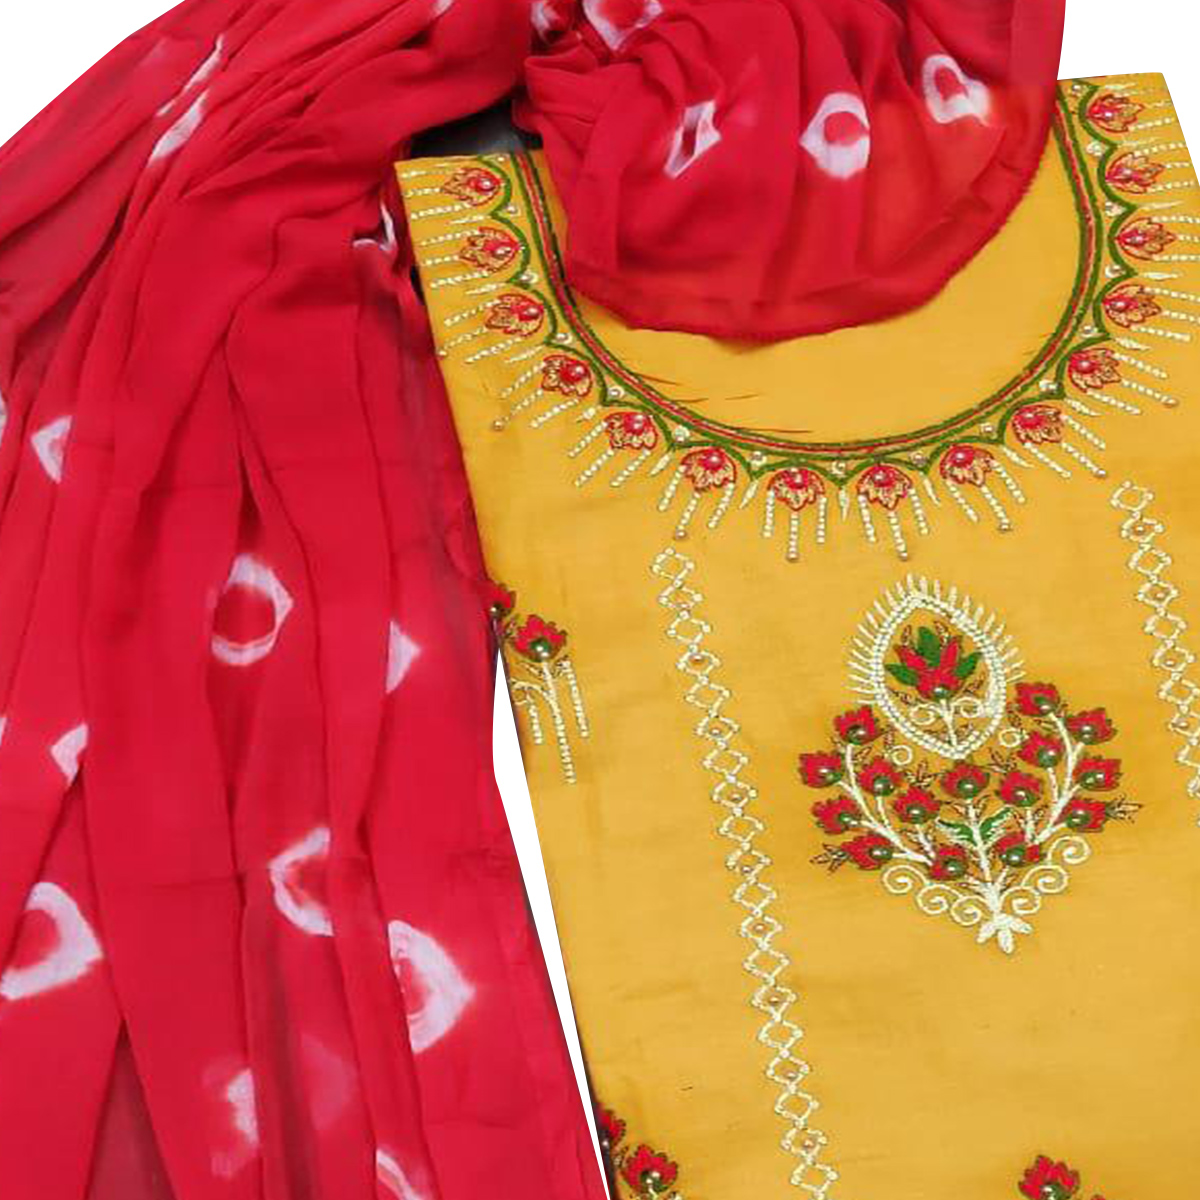 IRIS - Yellow Colored Partywear Floral Embroidered Modal-Chanderi Cotton Dress Material